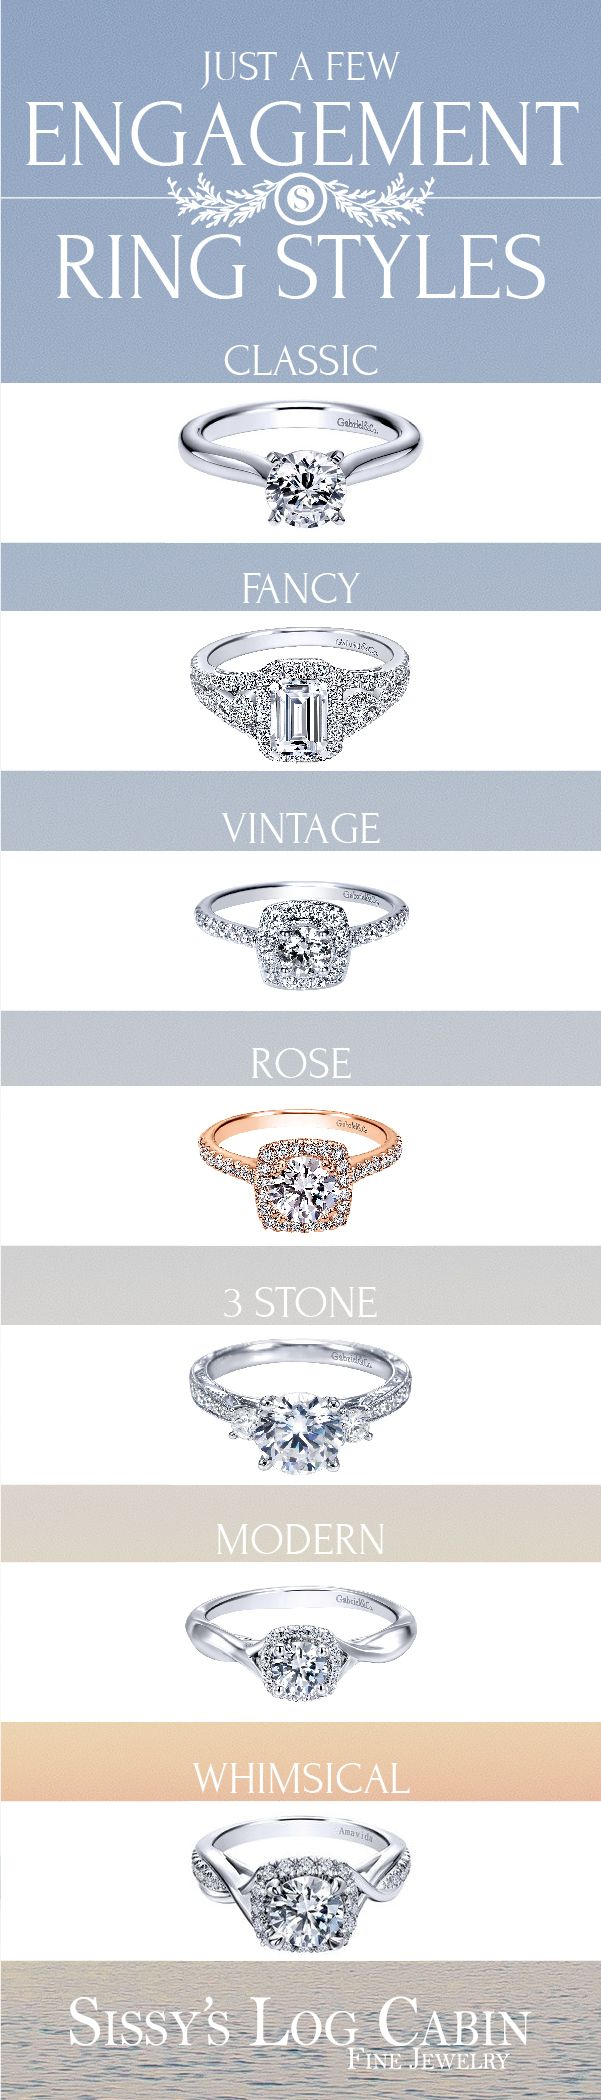 The perfect engagement ring! There are so many styles to choose from...follow these easy tips to find your perfect ring!